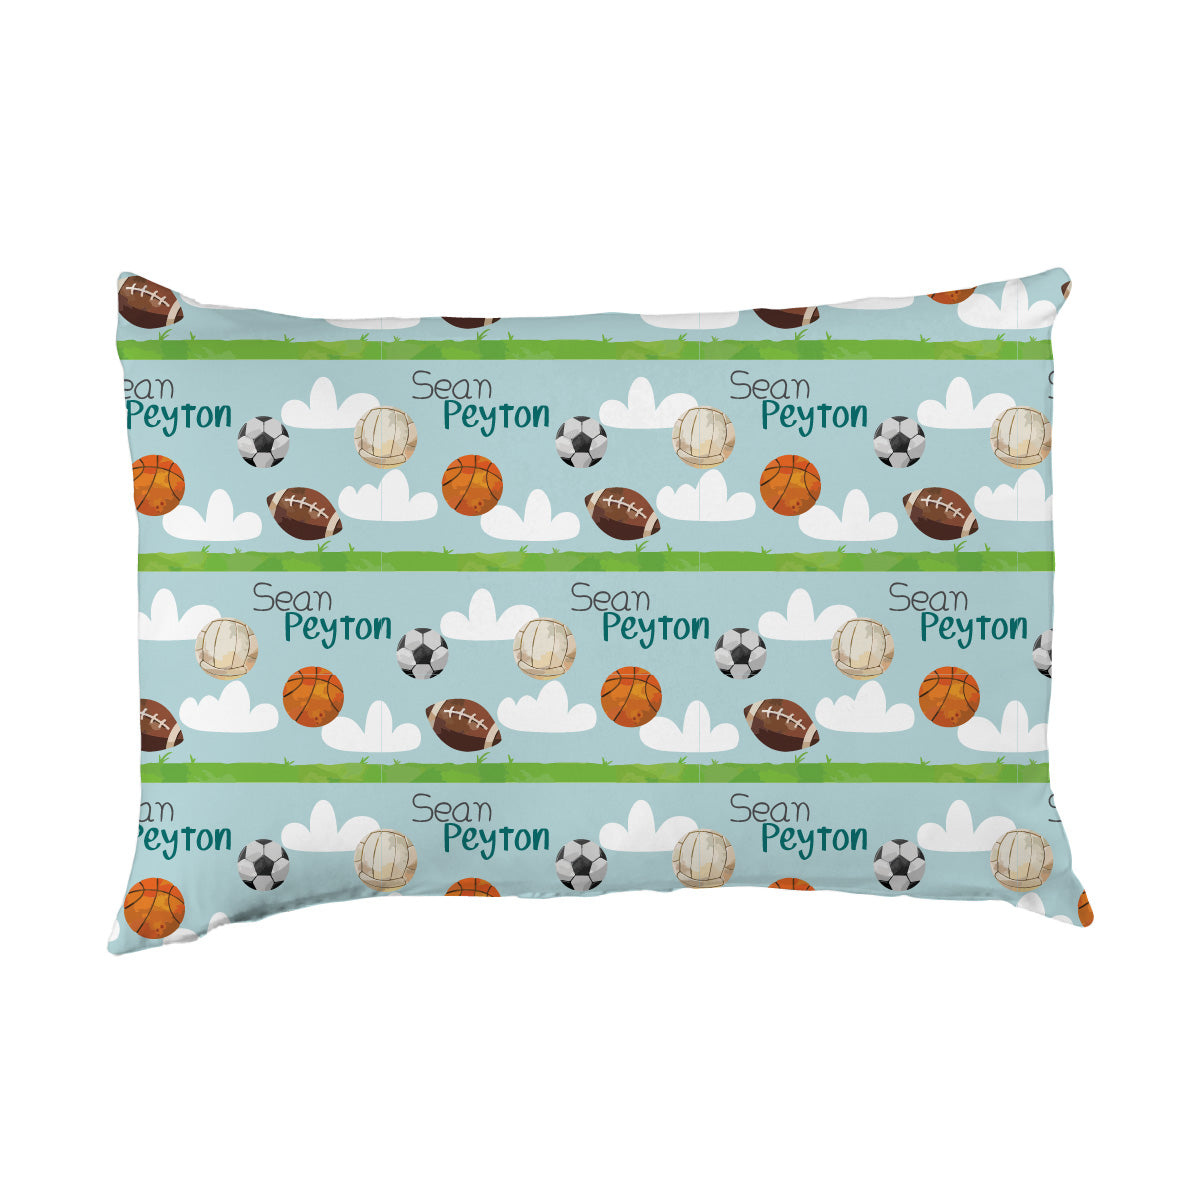 Sean's Sports | Big Kid Pillow Case